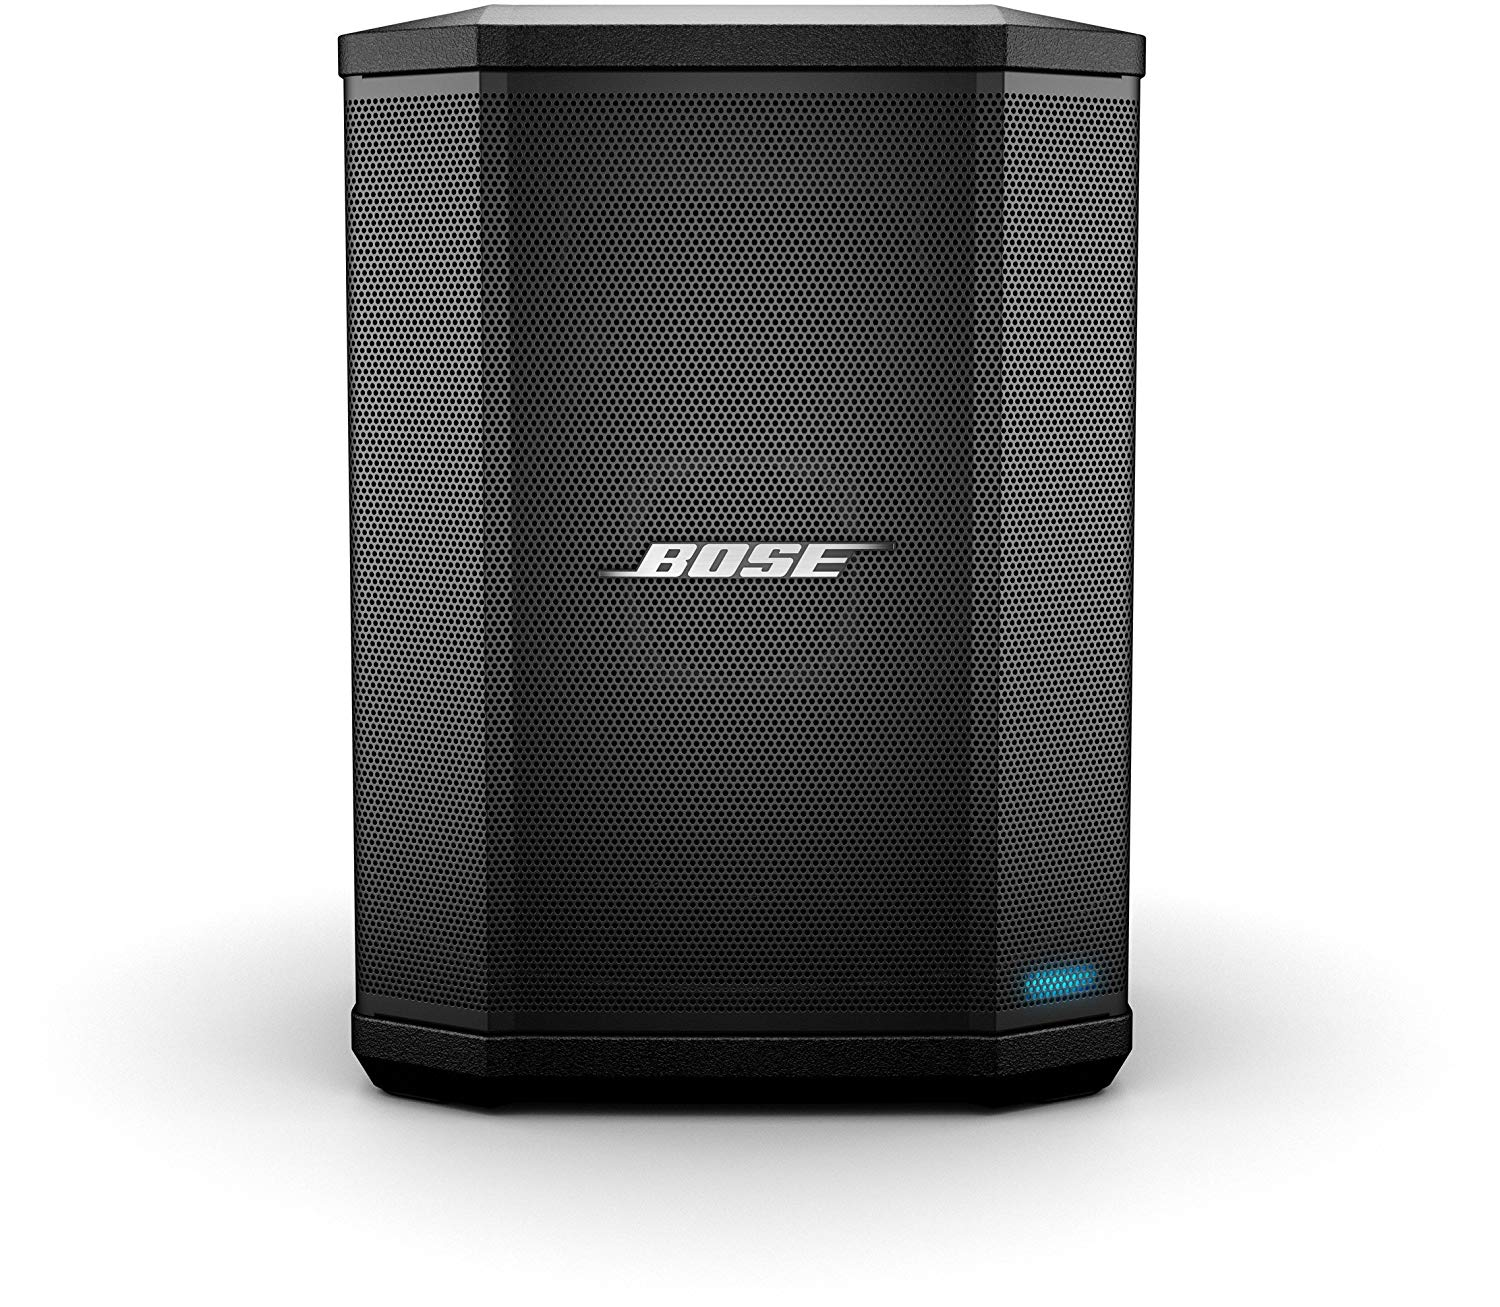 Bose(ボーズ)/S1 Pro system